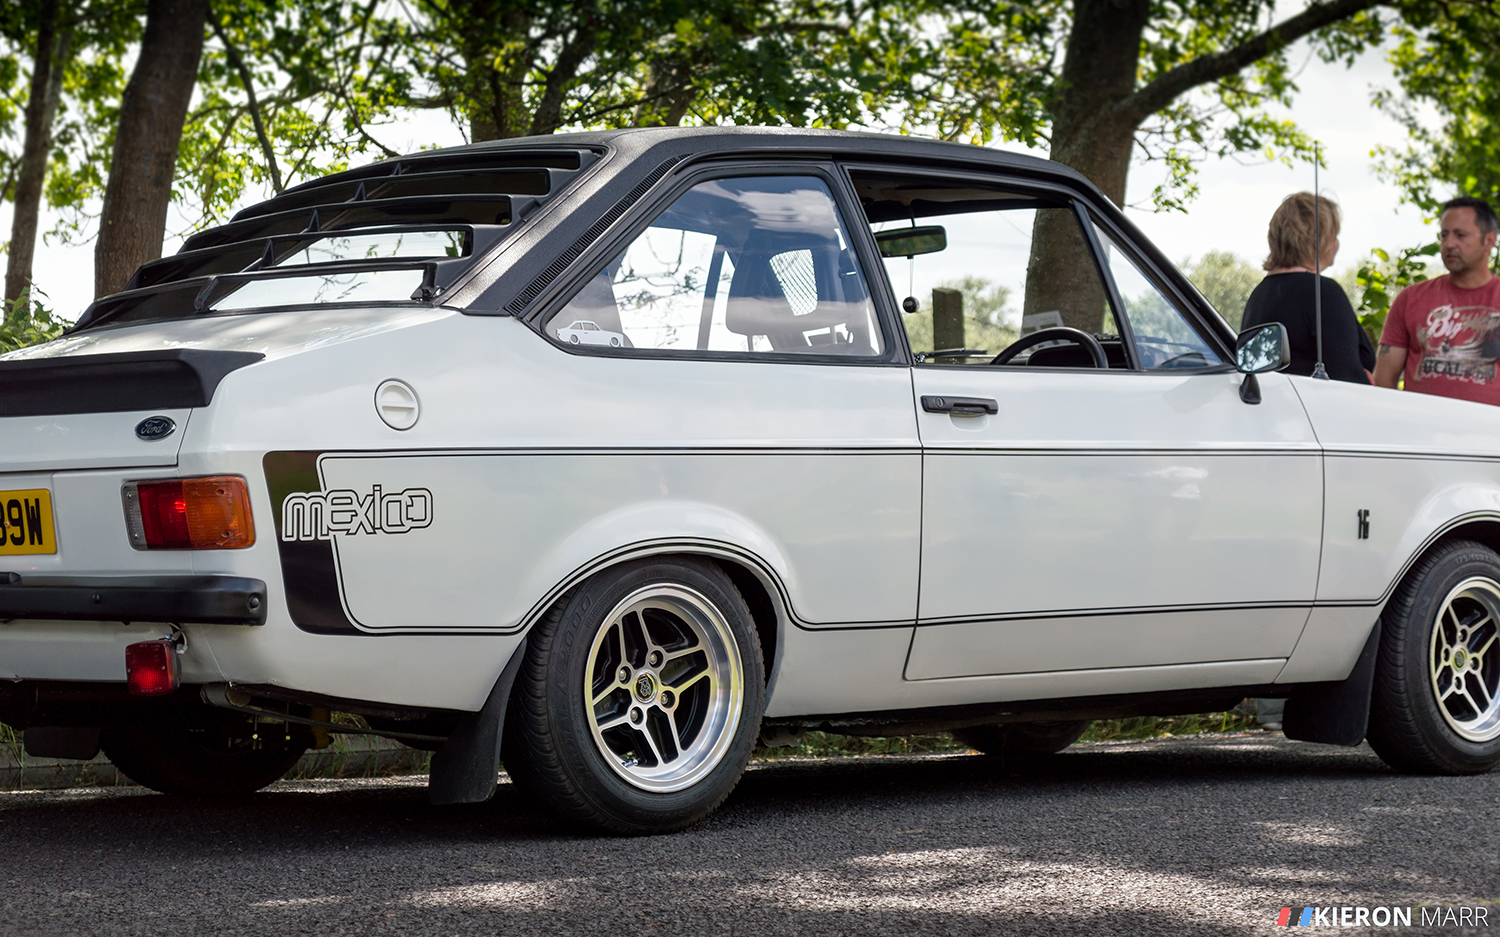 Ford Escort Mexico White - Back Side